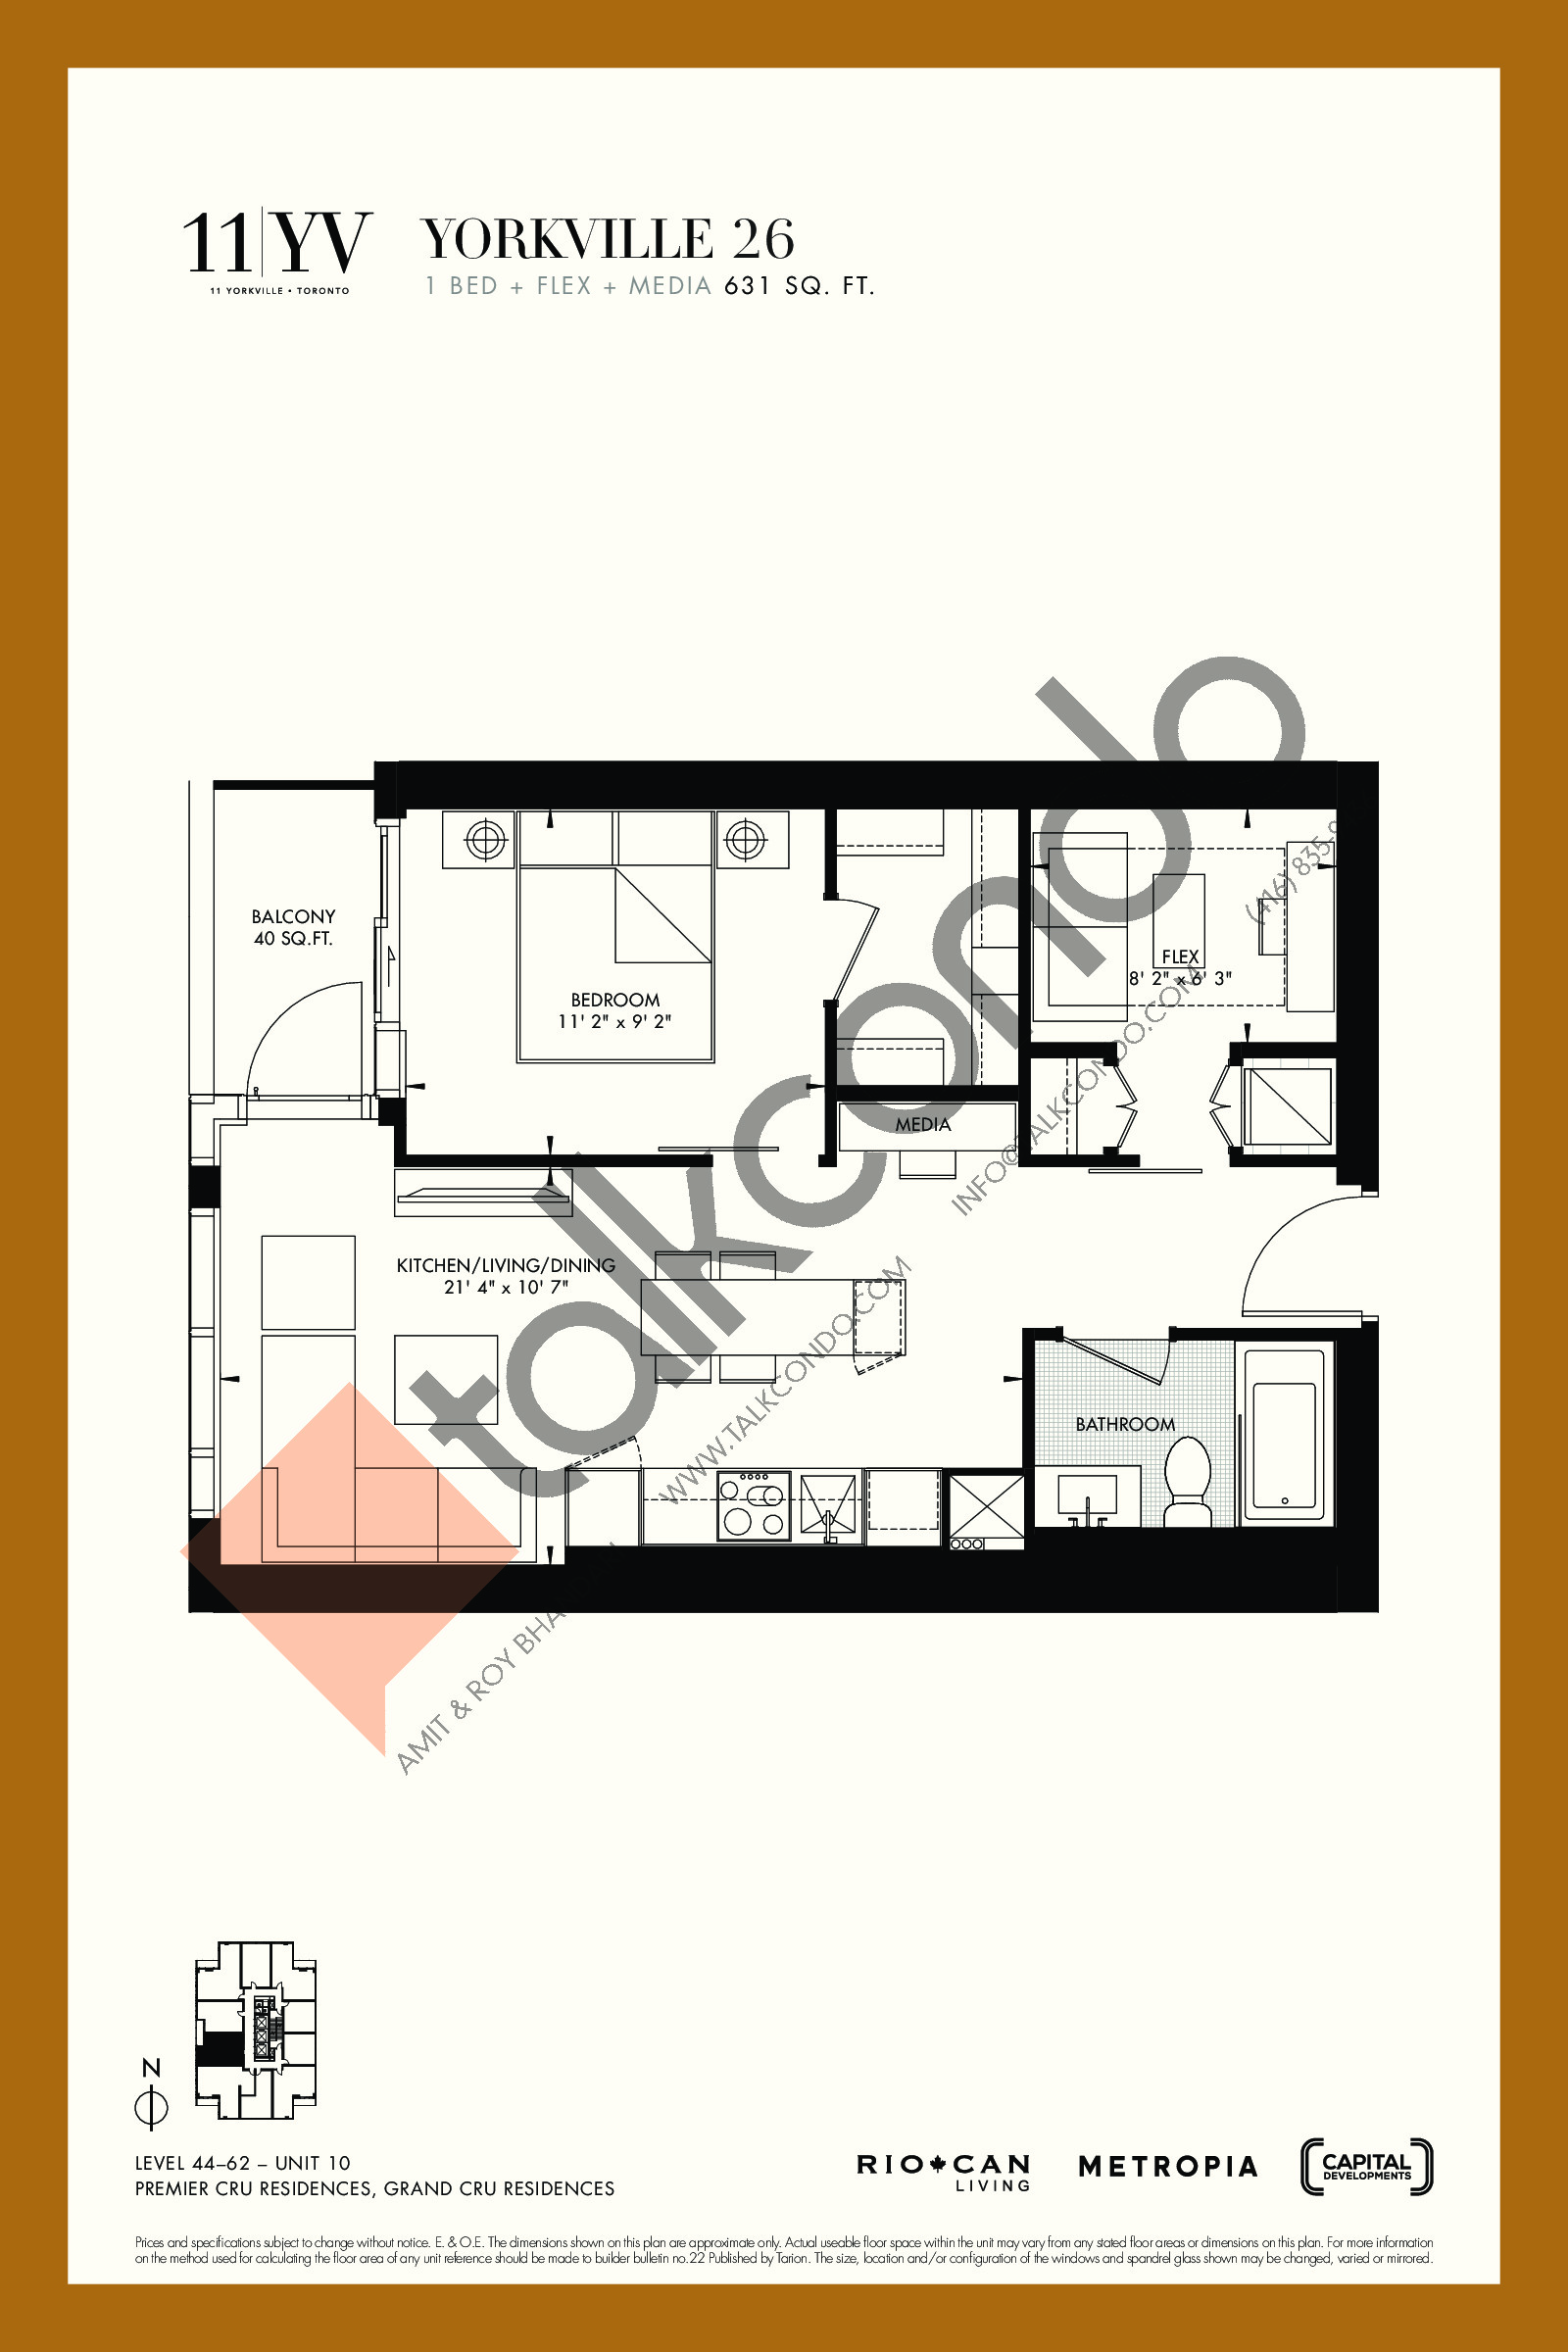 Yorkville 26 Floor Plan at 11YV Condos - 631 sq.ft